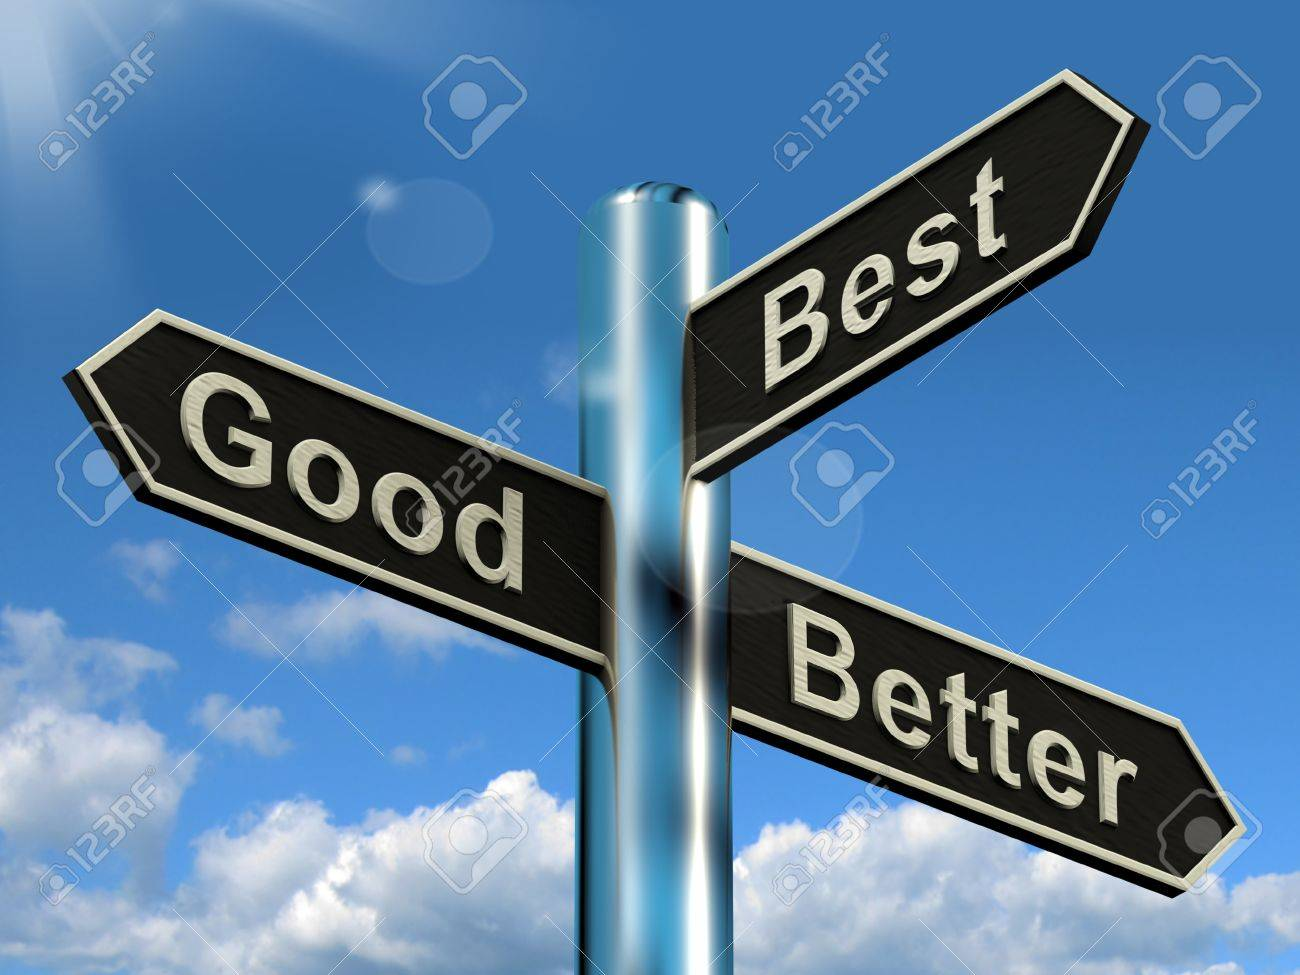 Good Better Best Signpost Representing Ratings And Improvement Stock Photo - 13564598